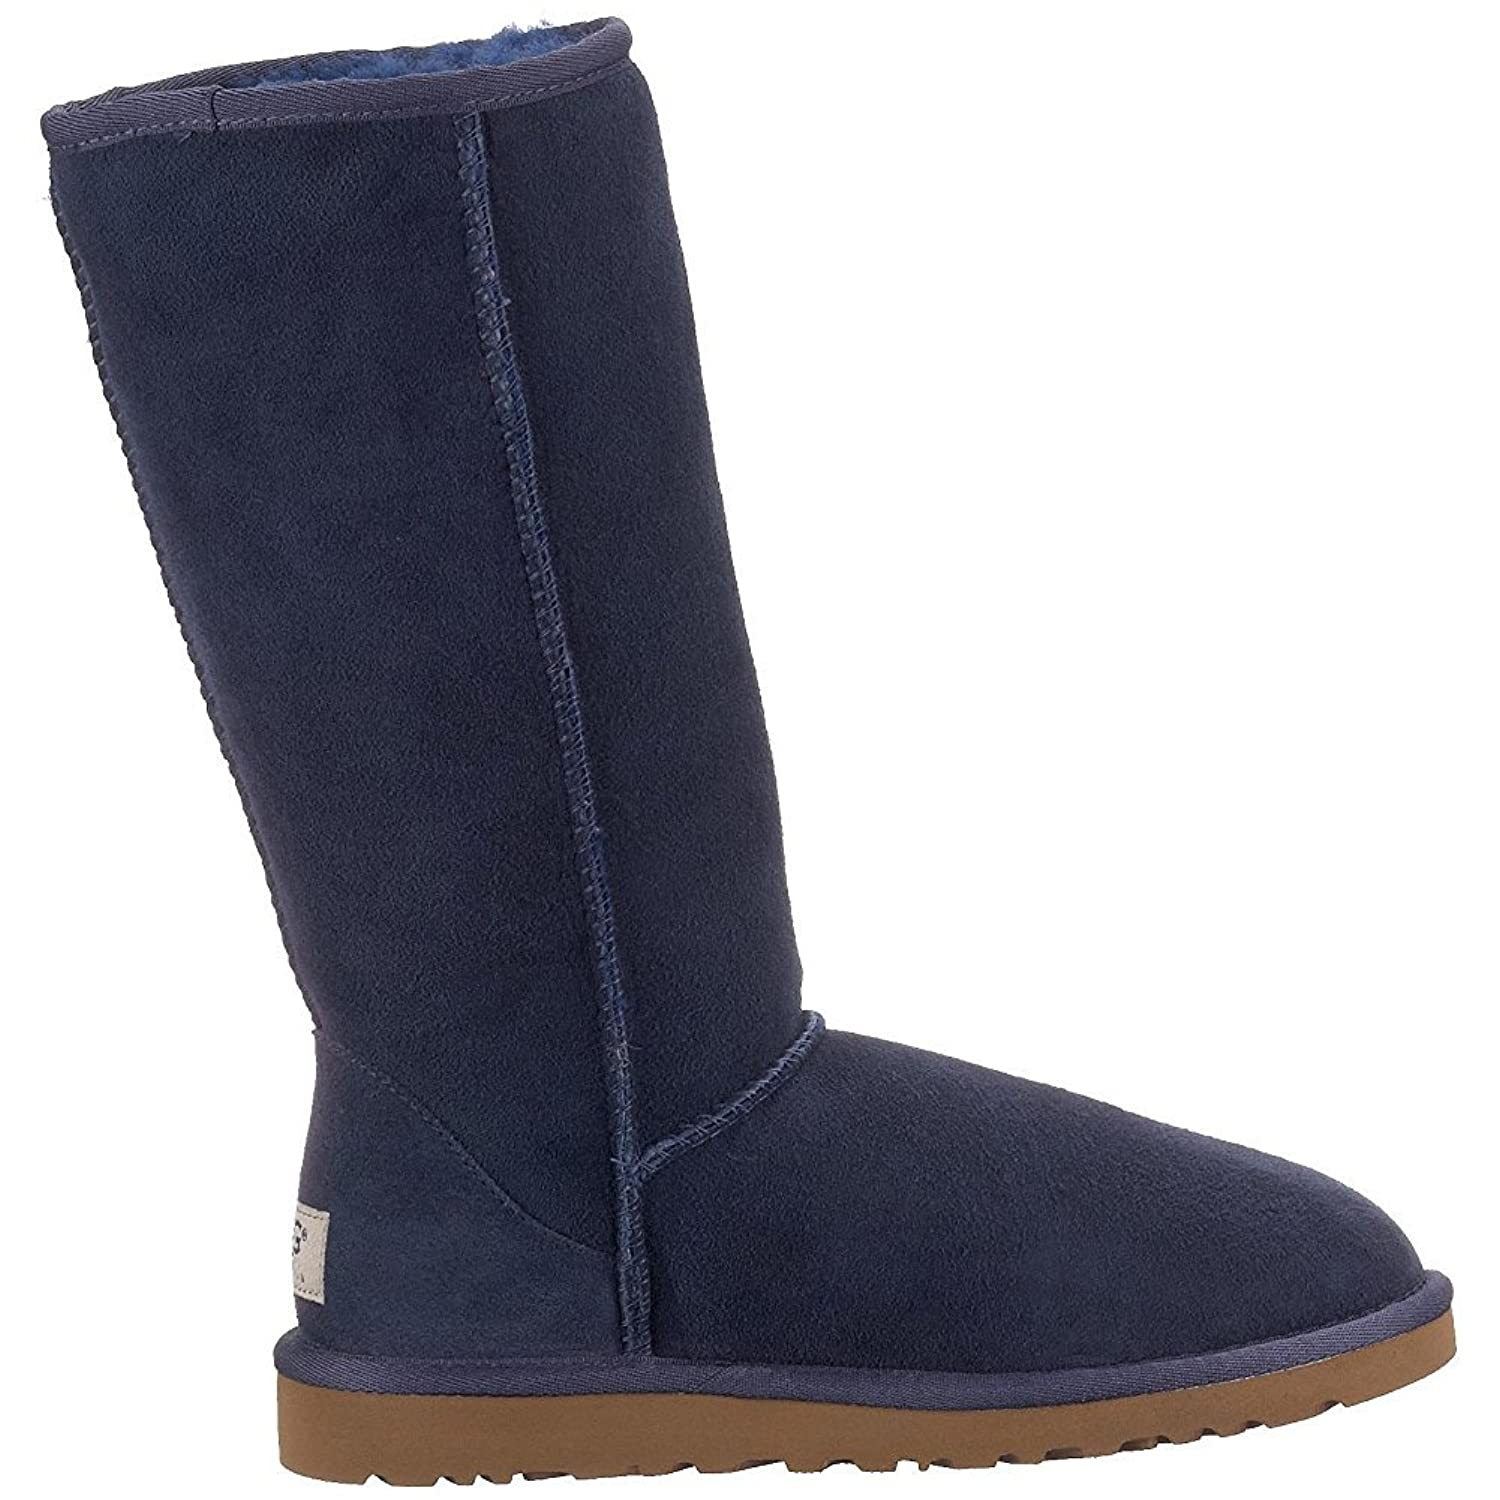 Australia Neutral Casual Shoes Waterproof Thicken Warm Boots Cotton Boots